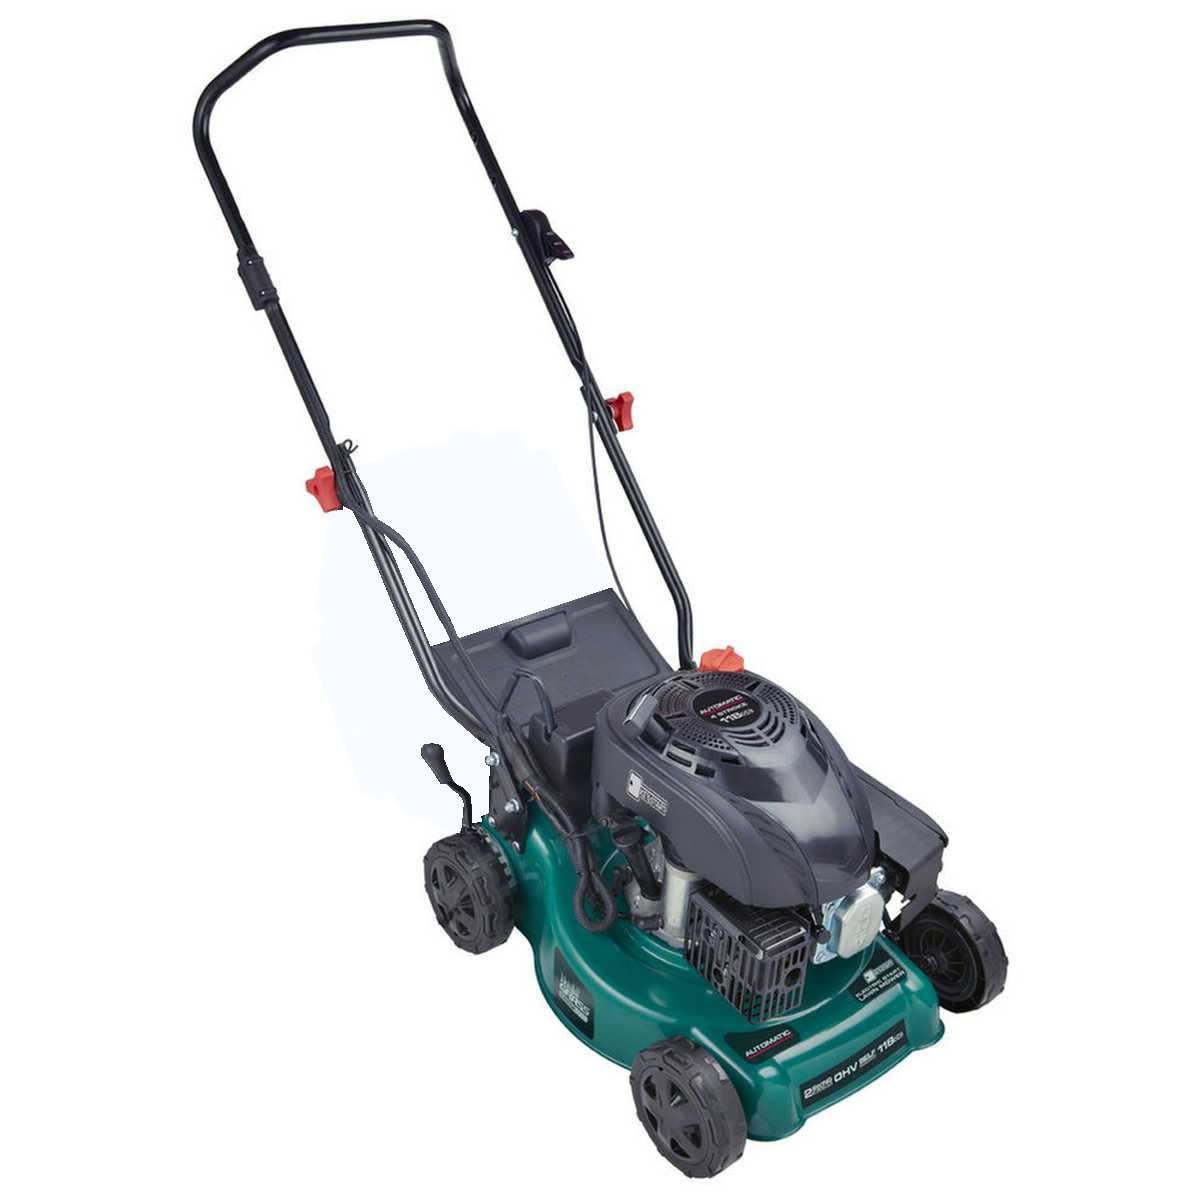 AUTOMATIC Petrol  118CC  4-Stroke Lawn Mower No Catcher (Factory Second)